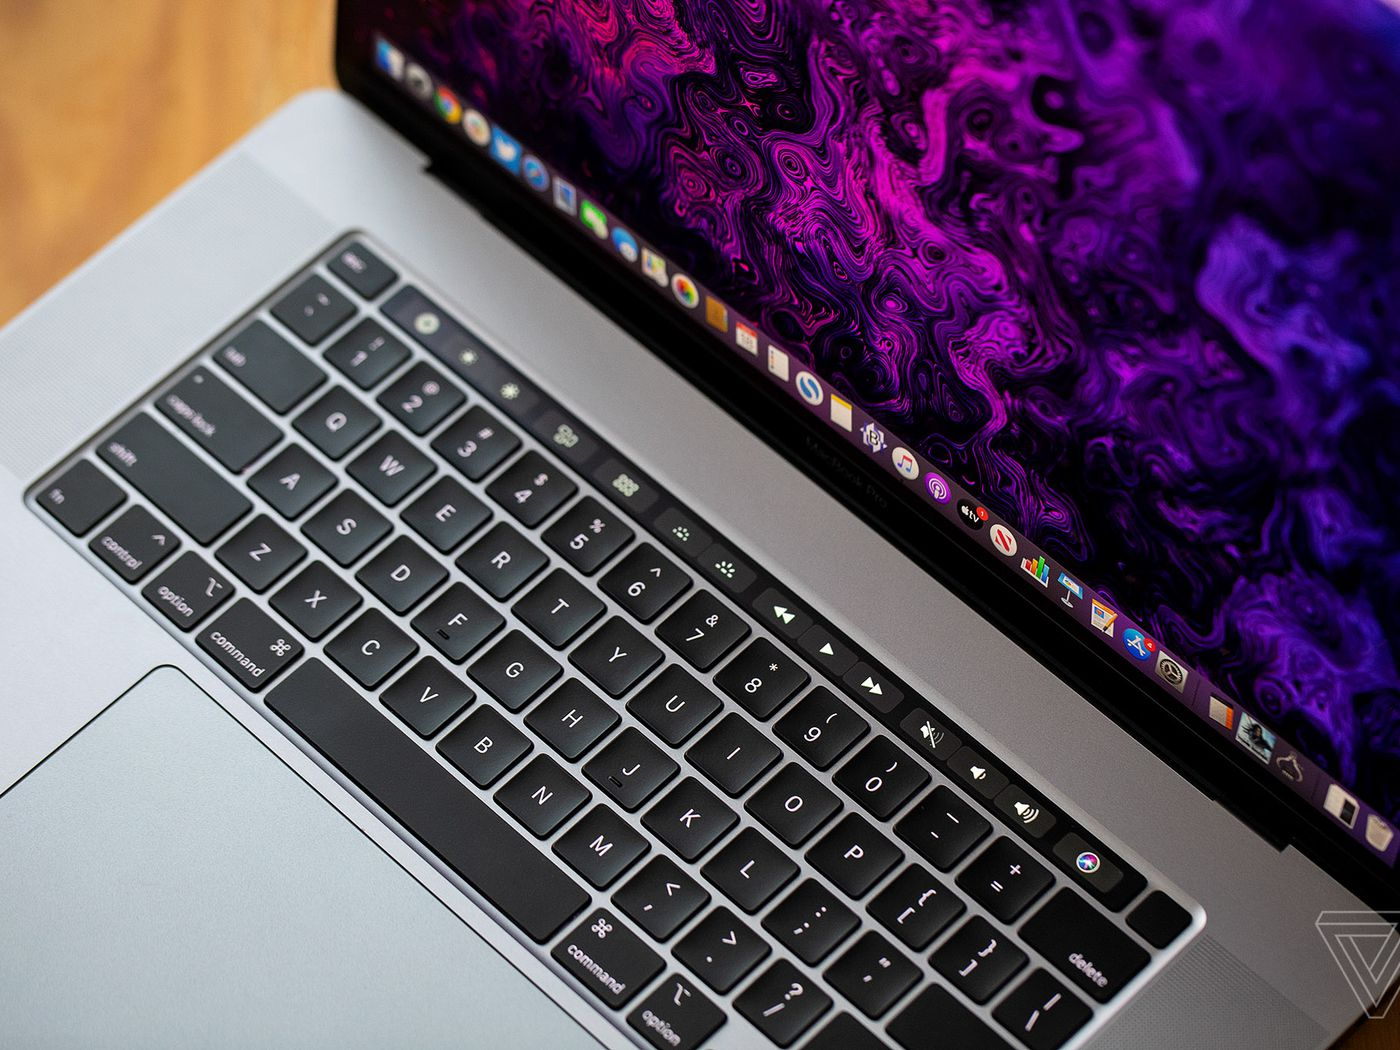 New Macbook Models With Scissor Switch Keyboards Are Reportedly Coming Soon The Verge